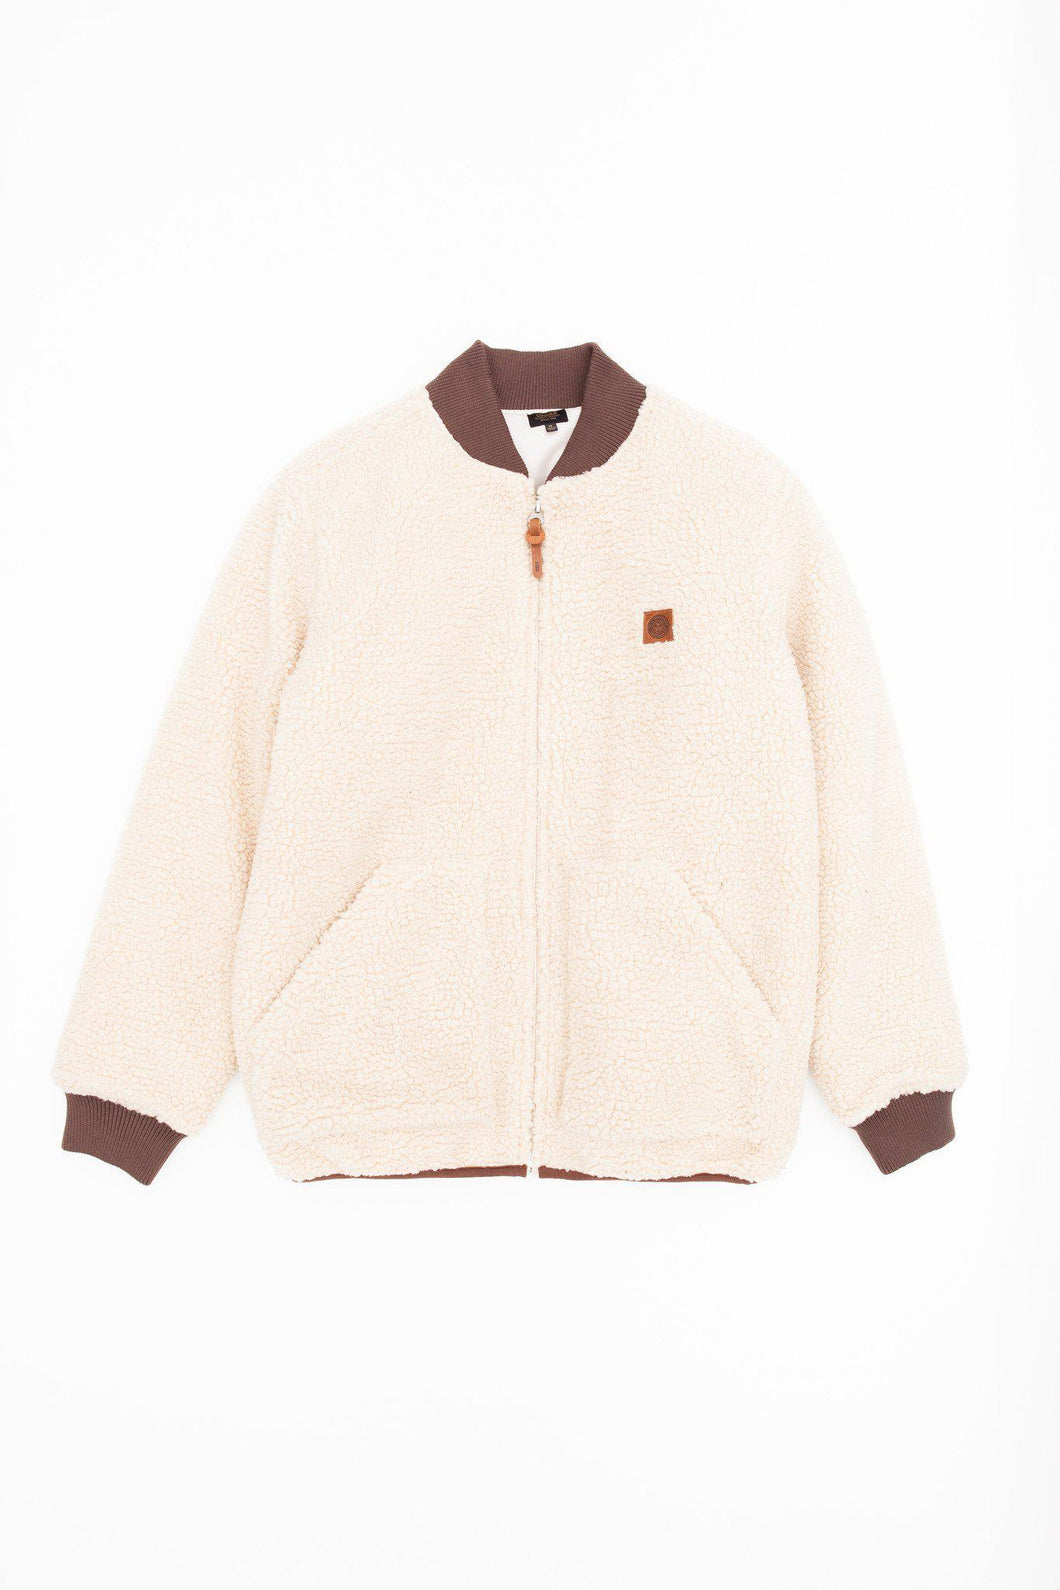 OBEY FREEWAY JACKET CREAM-The Collateral